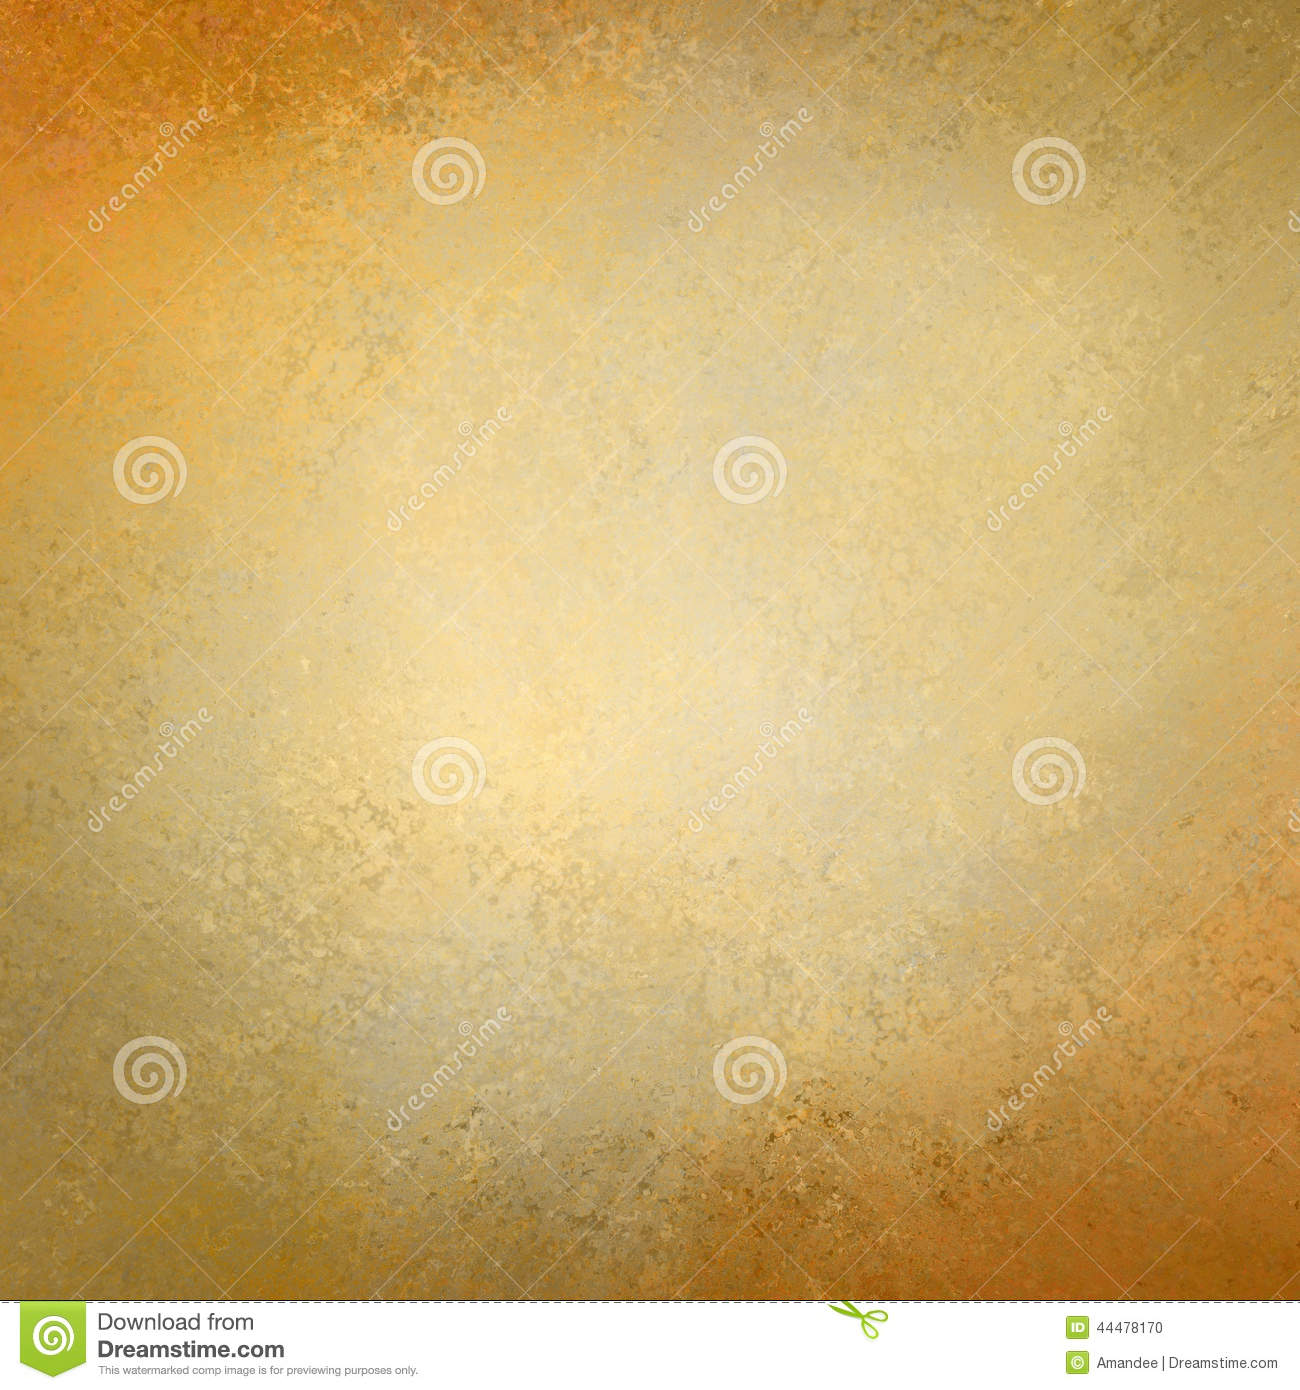 Solid Gold Background Paper With Vintage Grunge Texture Design Stock ...